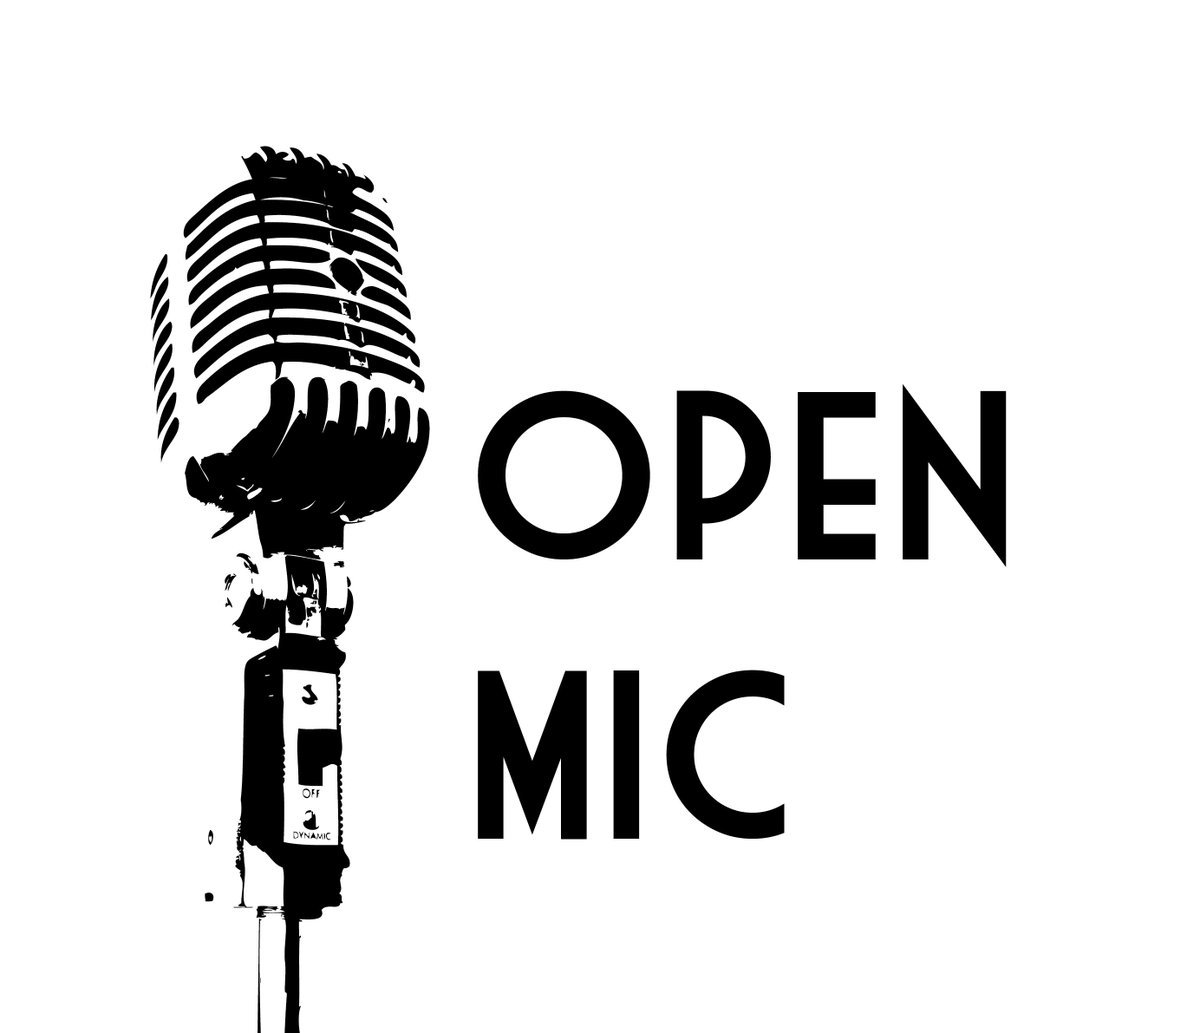 OPEN MIC - Sunday 4th August - from 7pm - Come down ask for Duncan and show us what youve got!!!